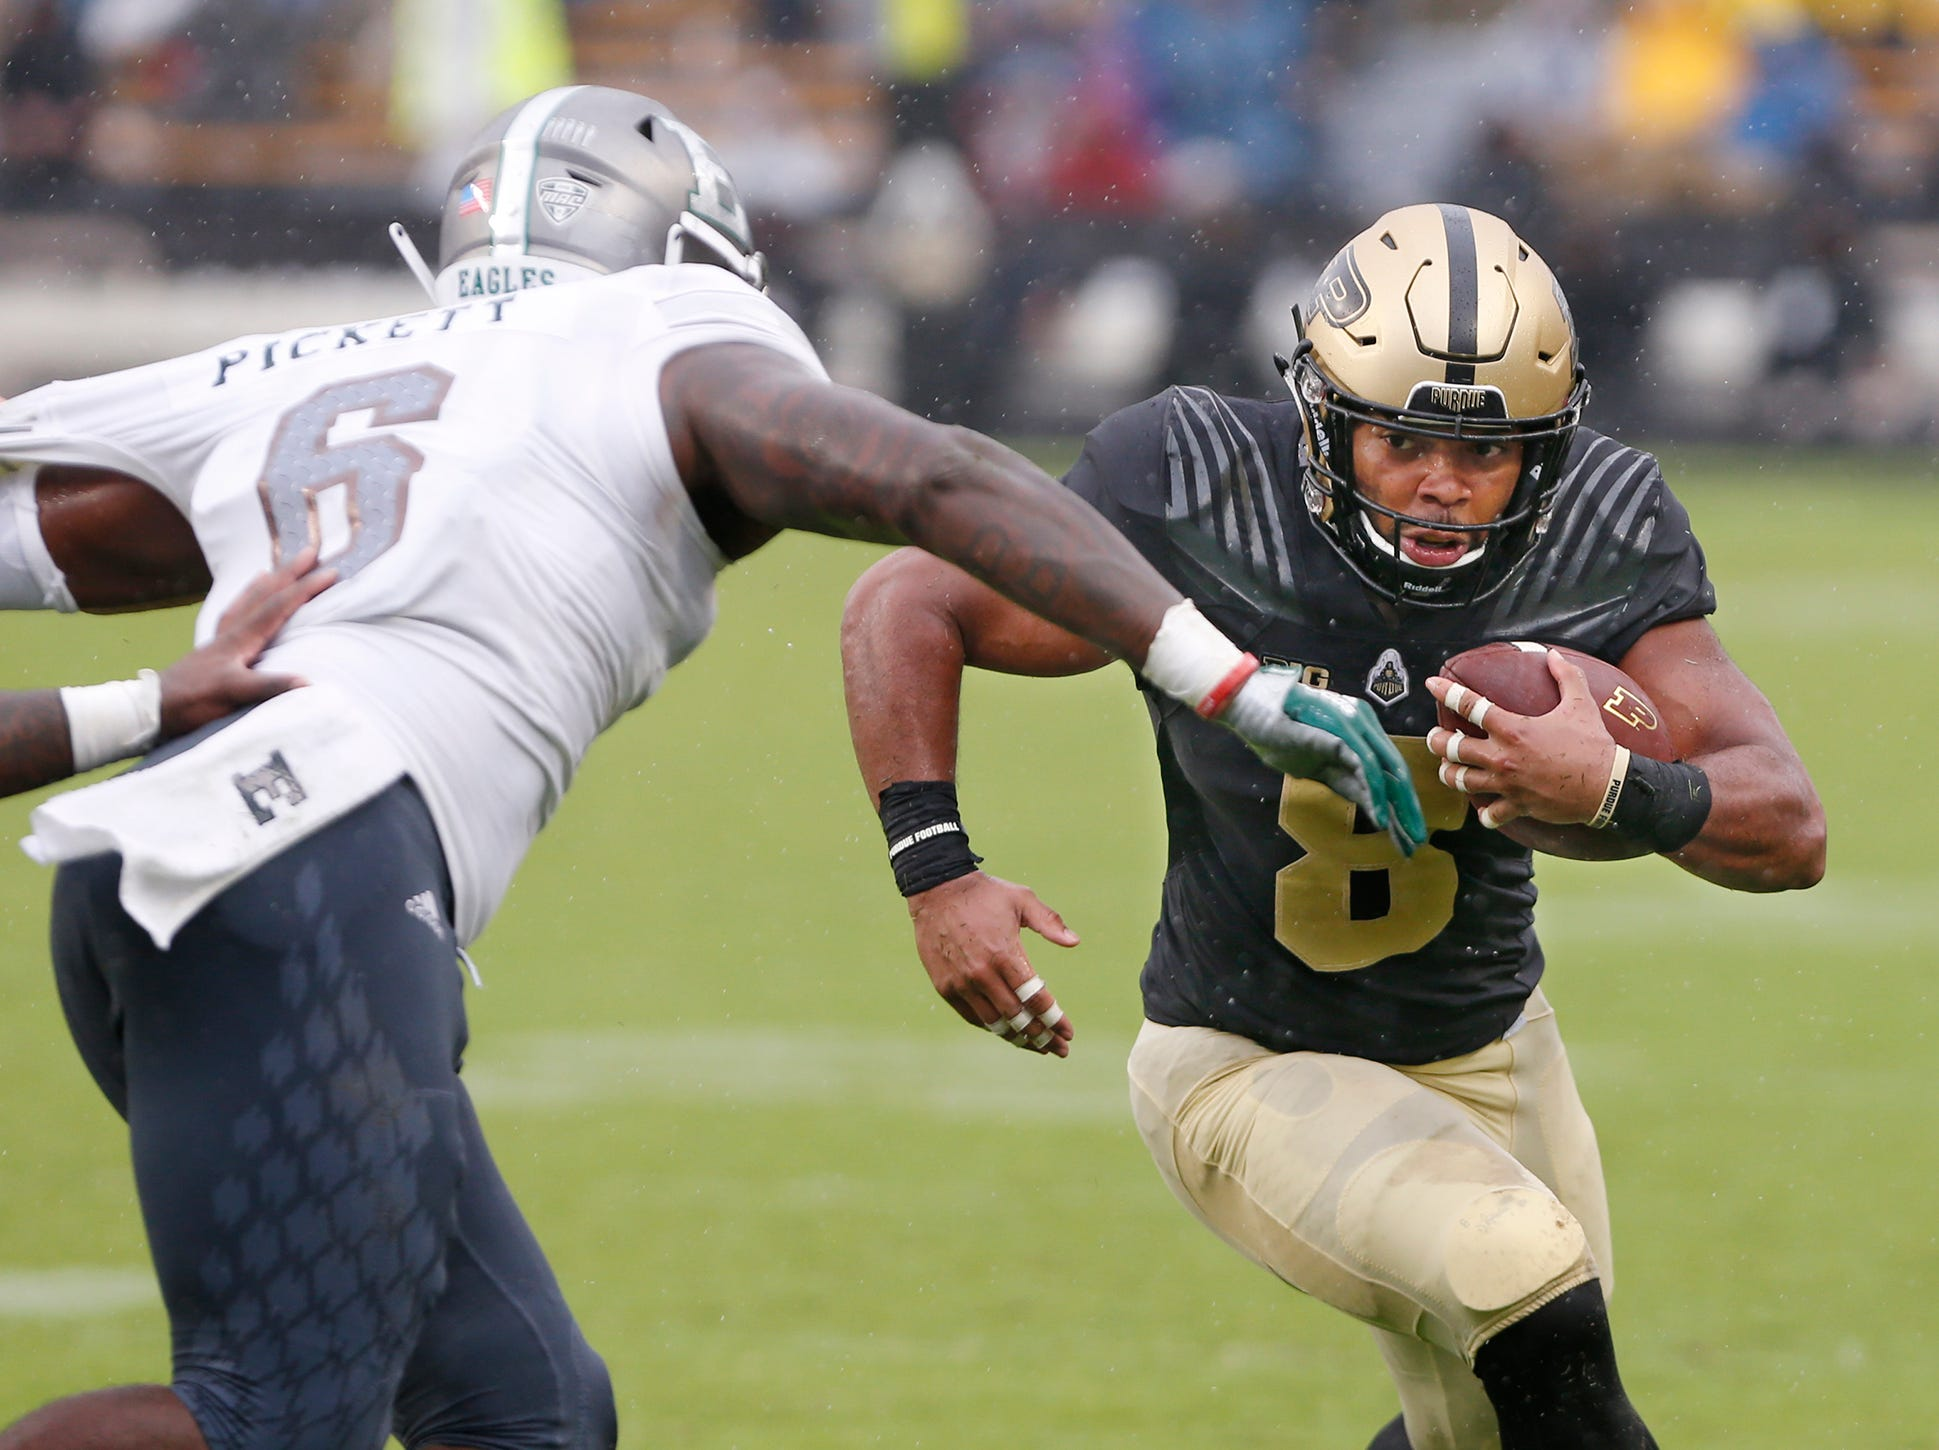 Markell Jones of Purdue with a first half carry against Eastern Michigan Saturday, September 8, 2018, in West Lafayette. Purdue fell to Eastern Michigan 20-19.